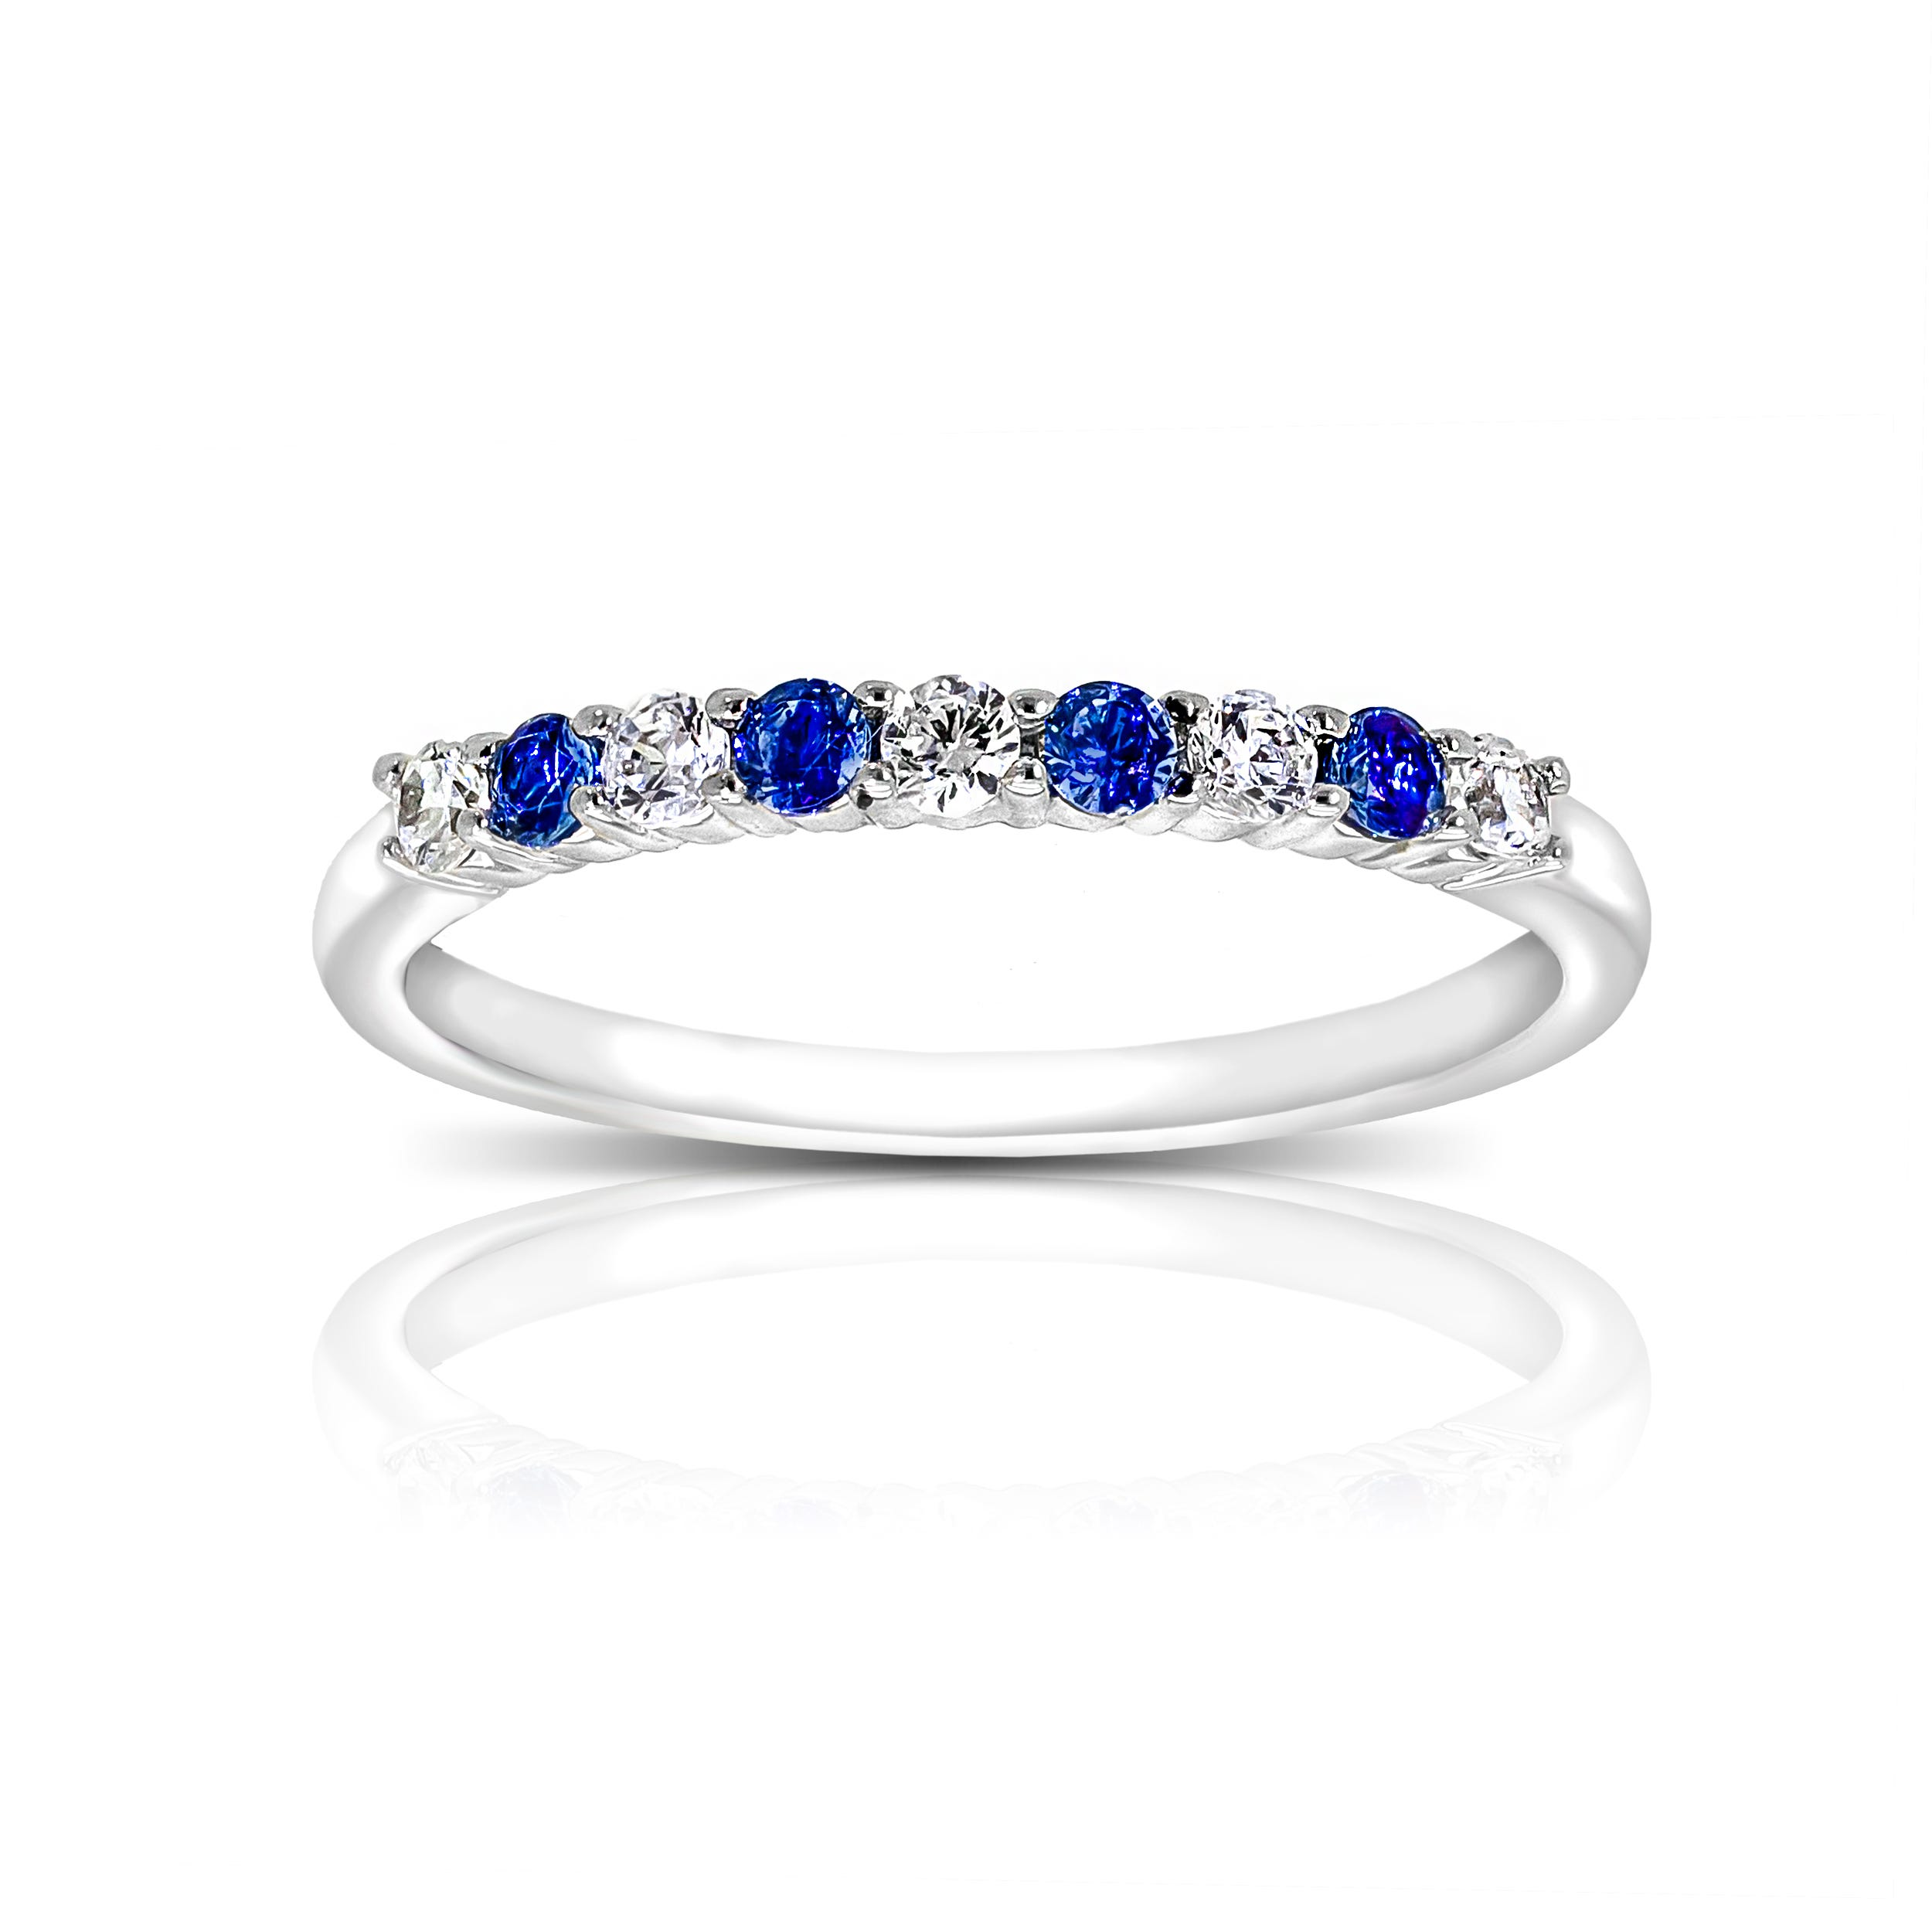 Blue Sapphire and Diamond Gemstone Ring in 10k White Gold